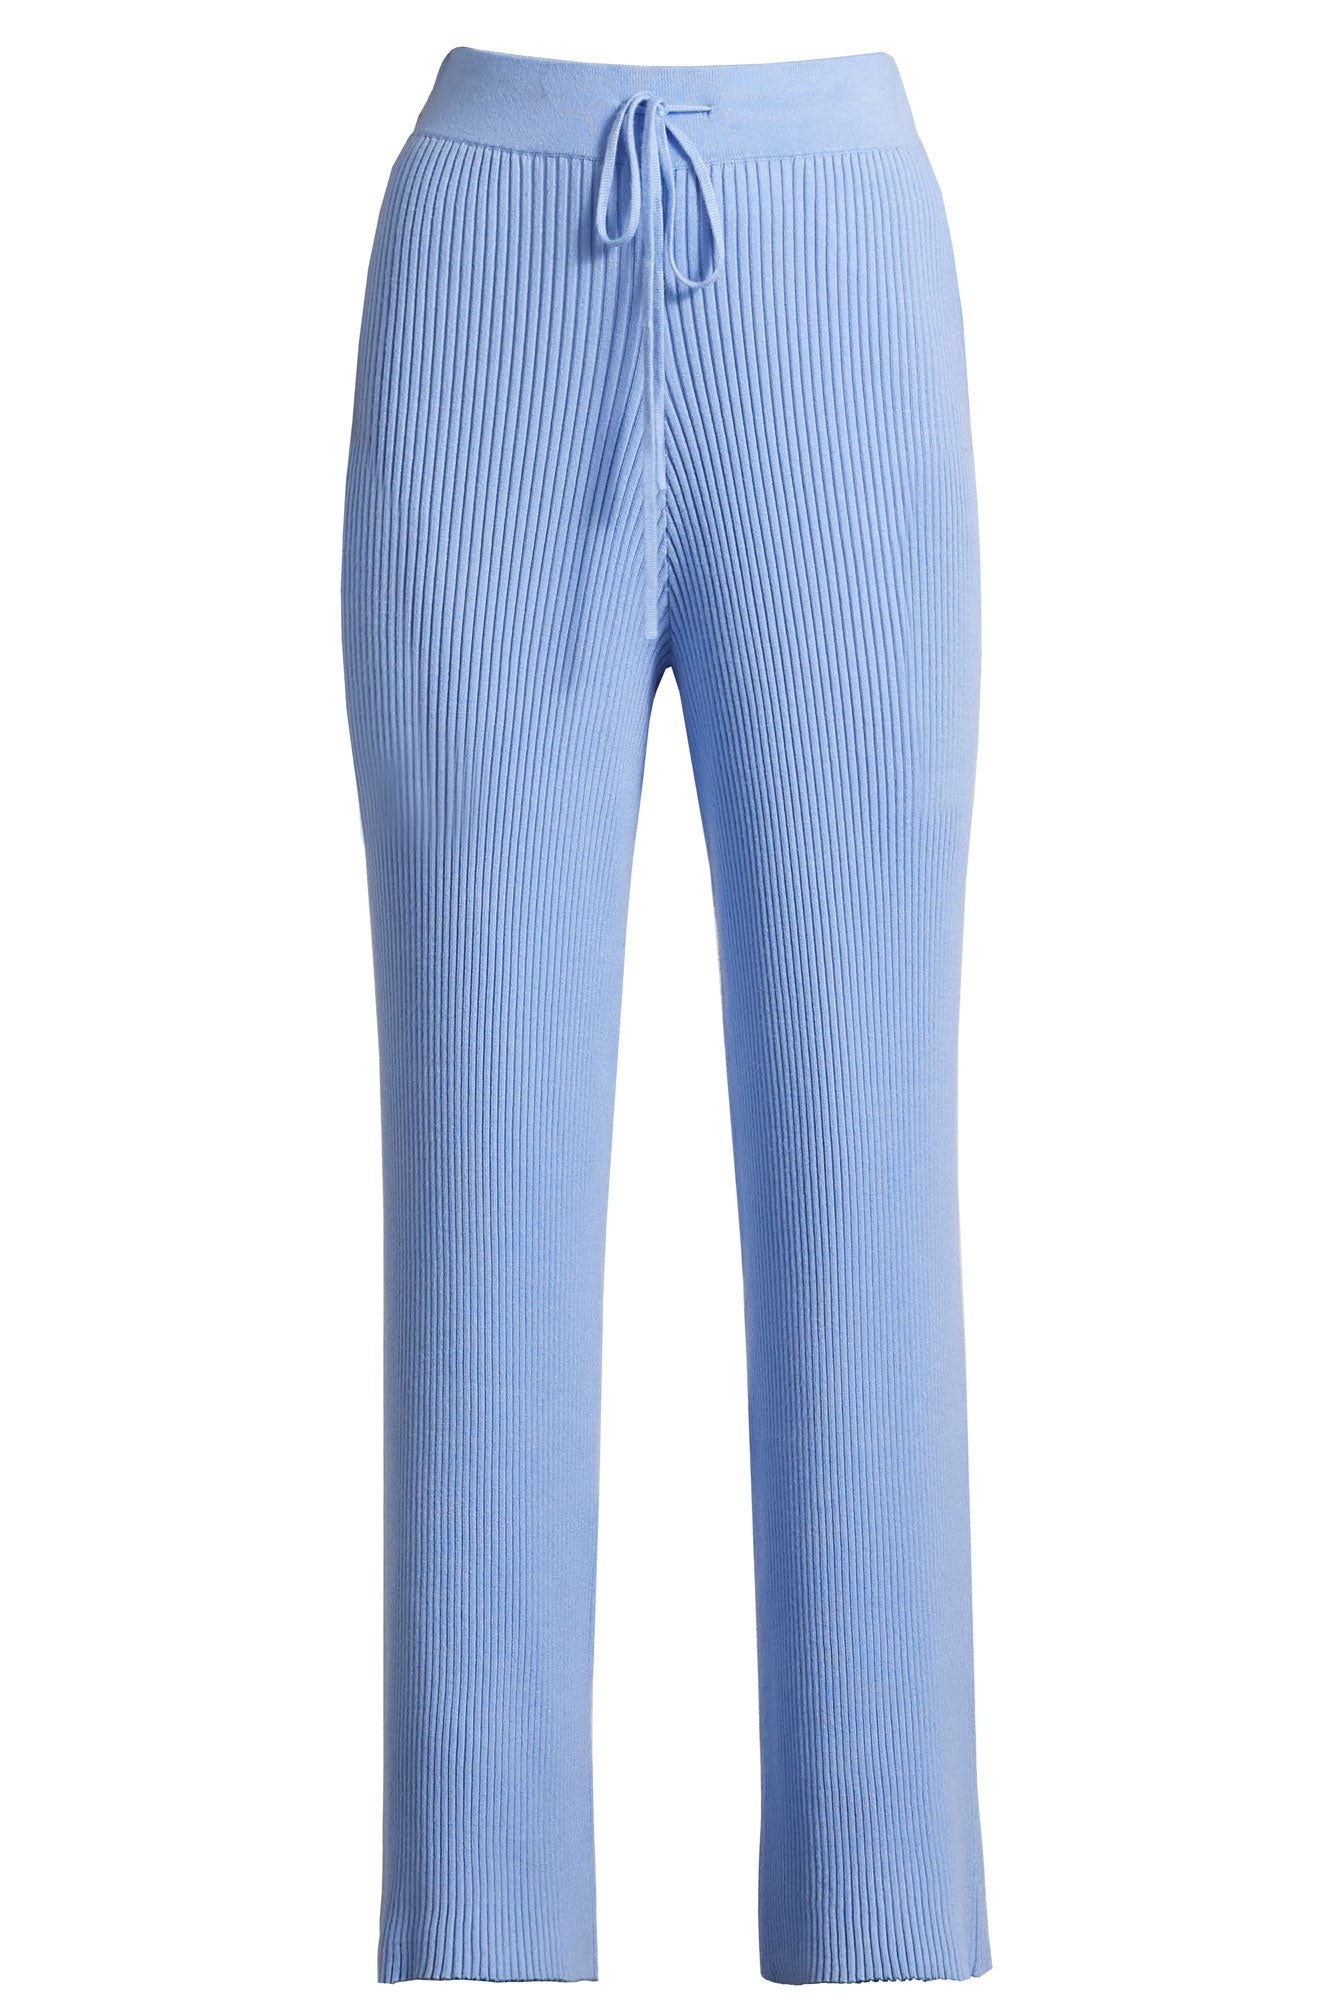 Ribbed Knit Pants - Cornflower